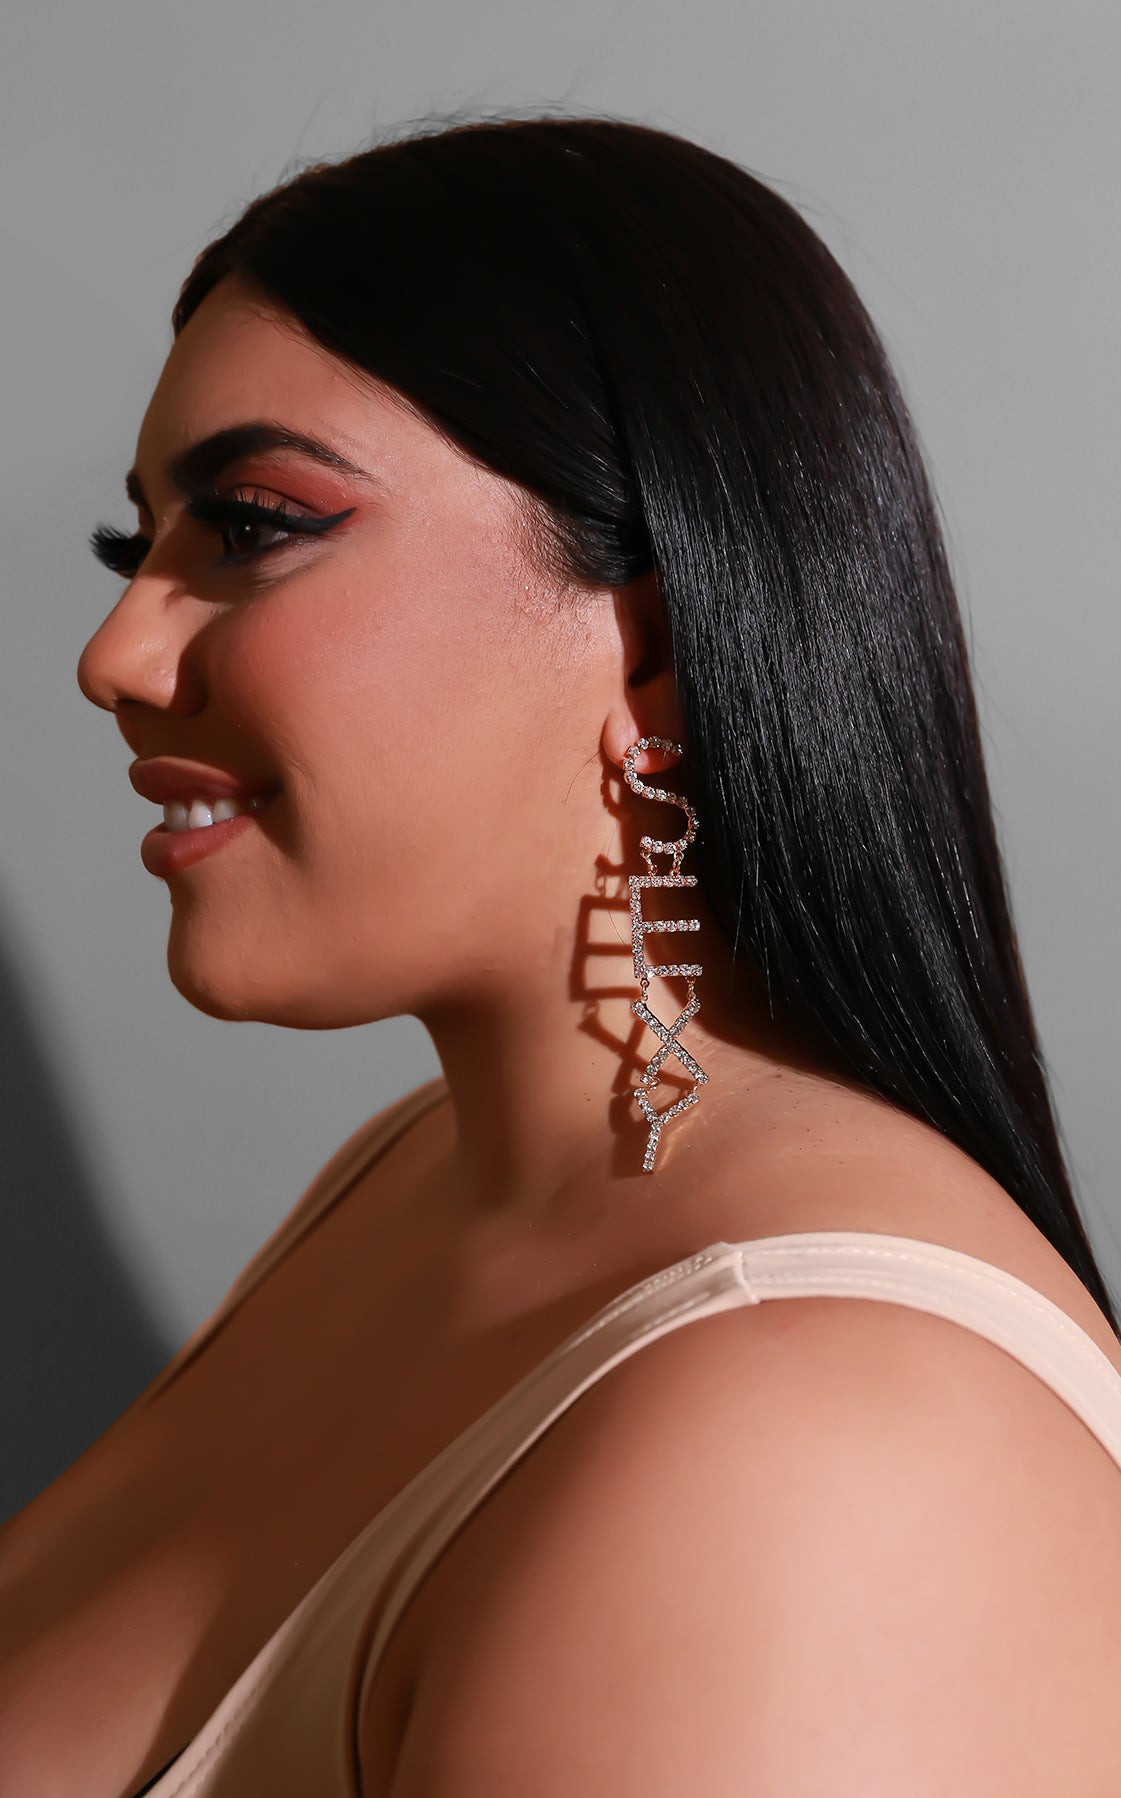 So Sexy Earrings